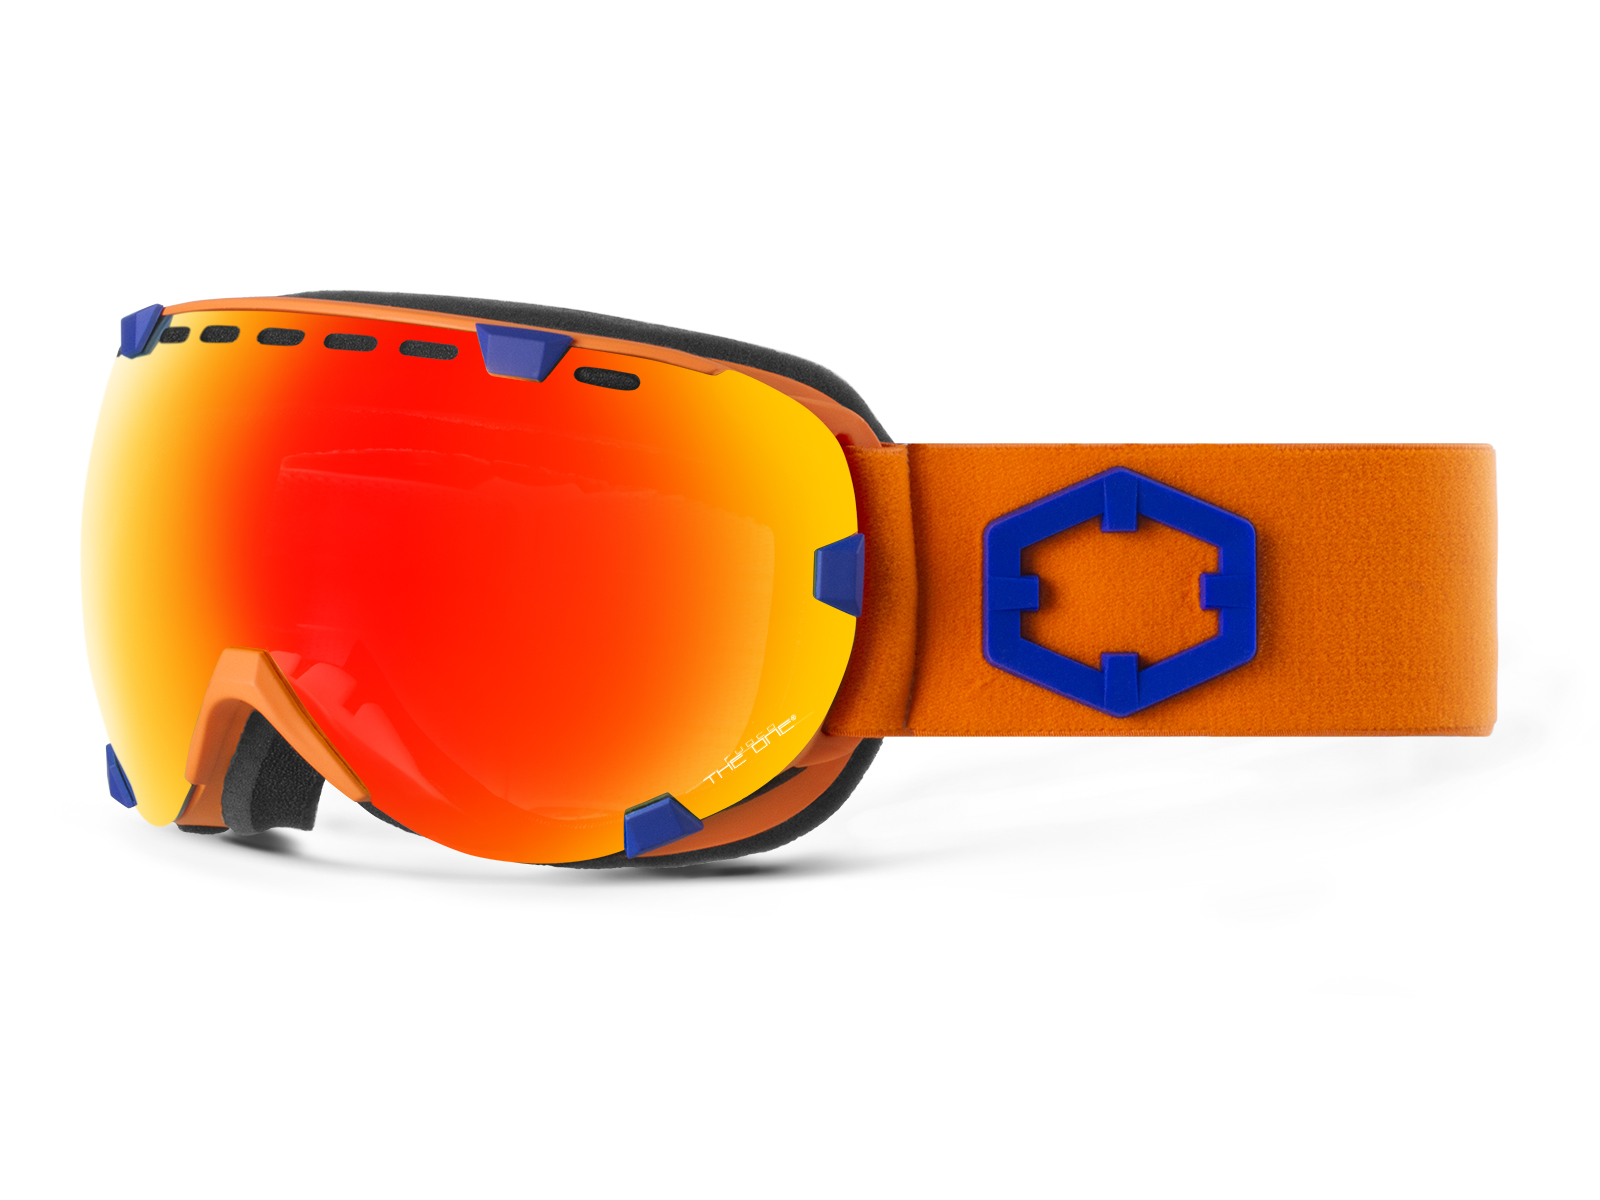 EYES BLUE ORANGE THE ONE FUOCO GOGGLE